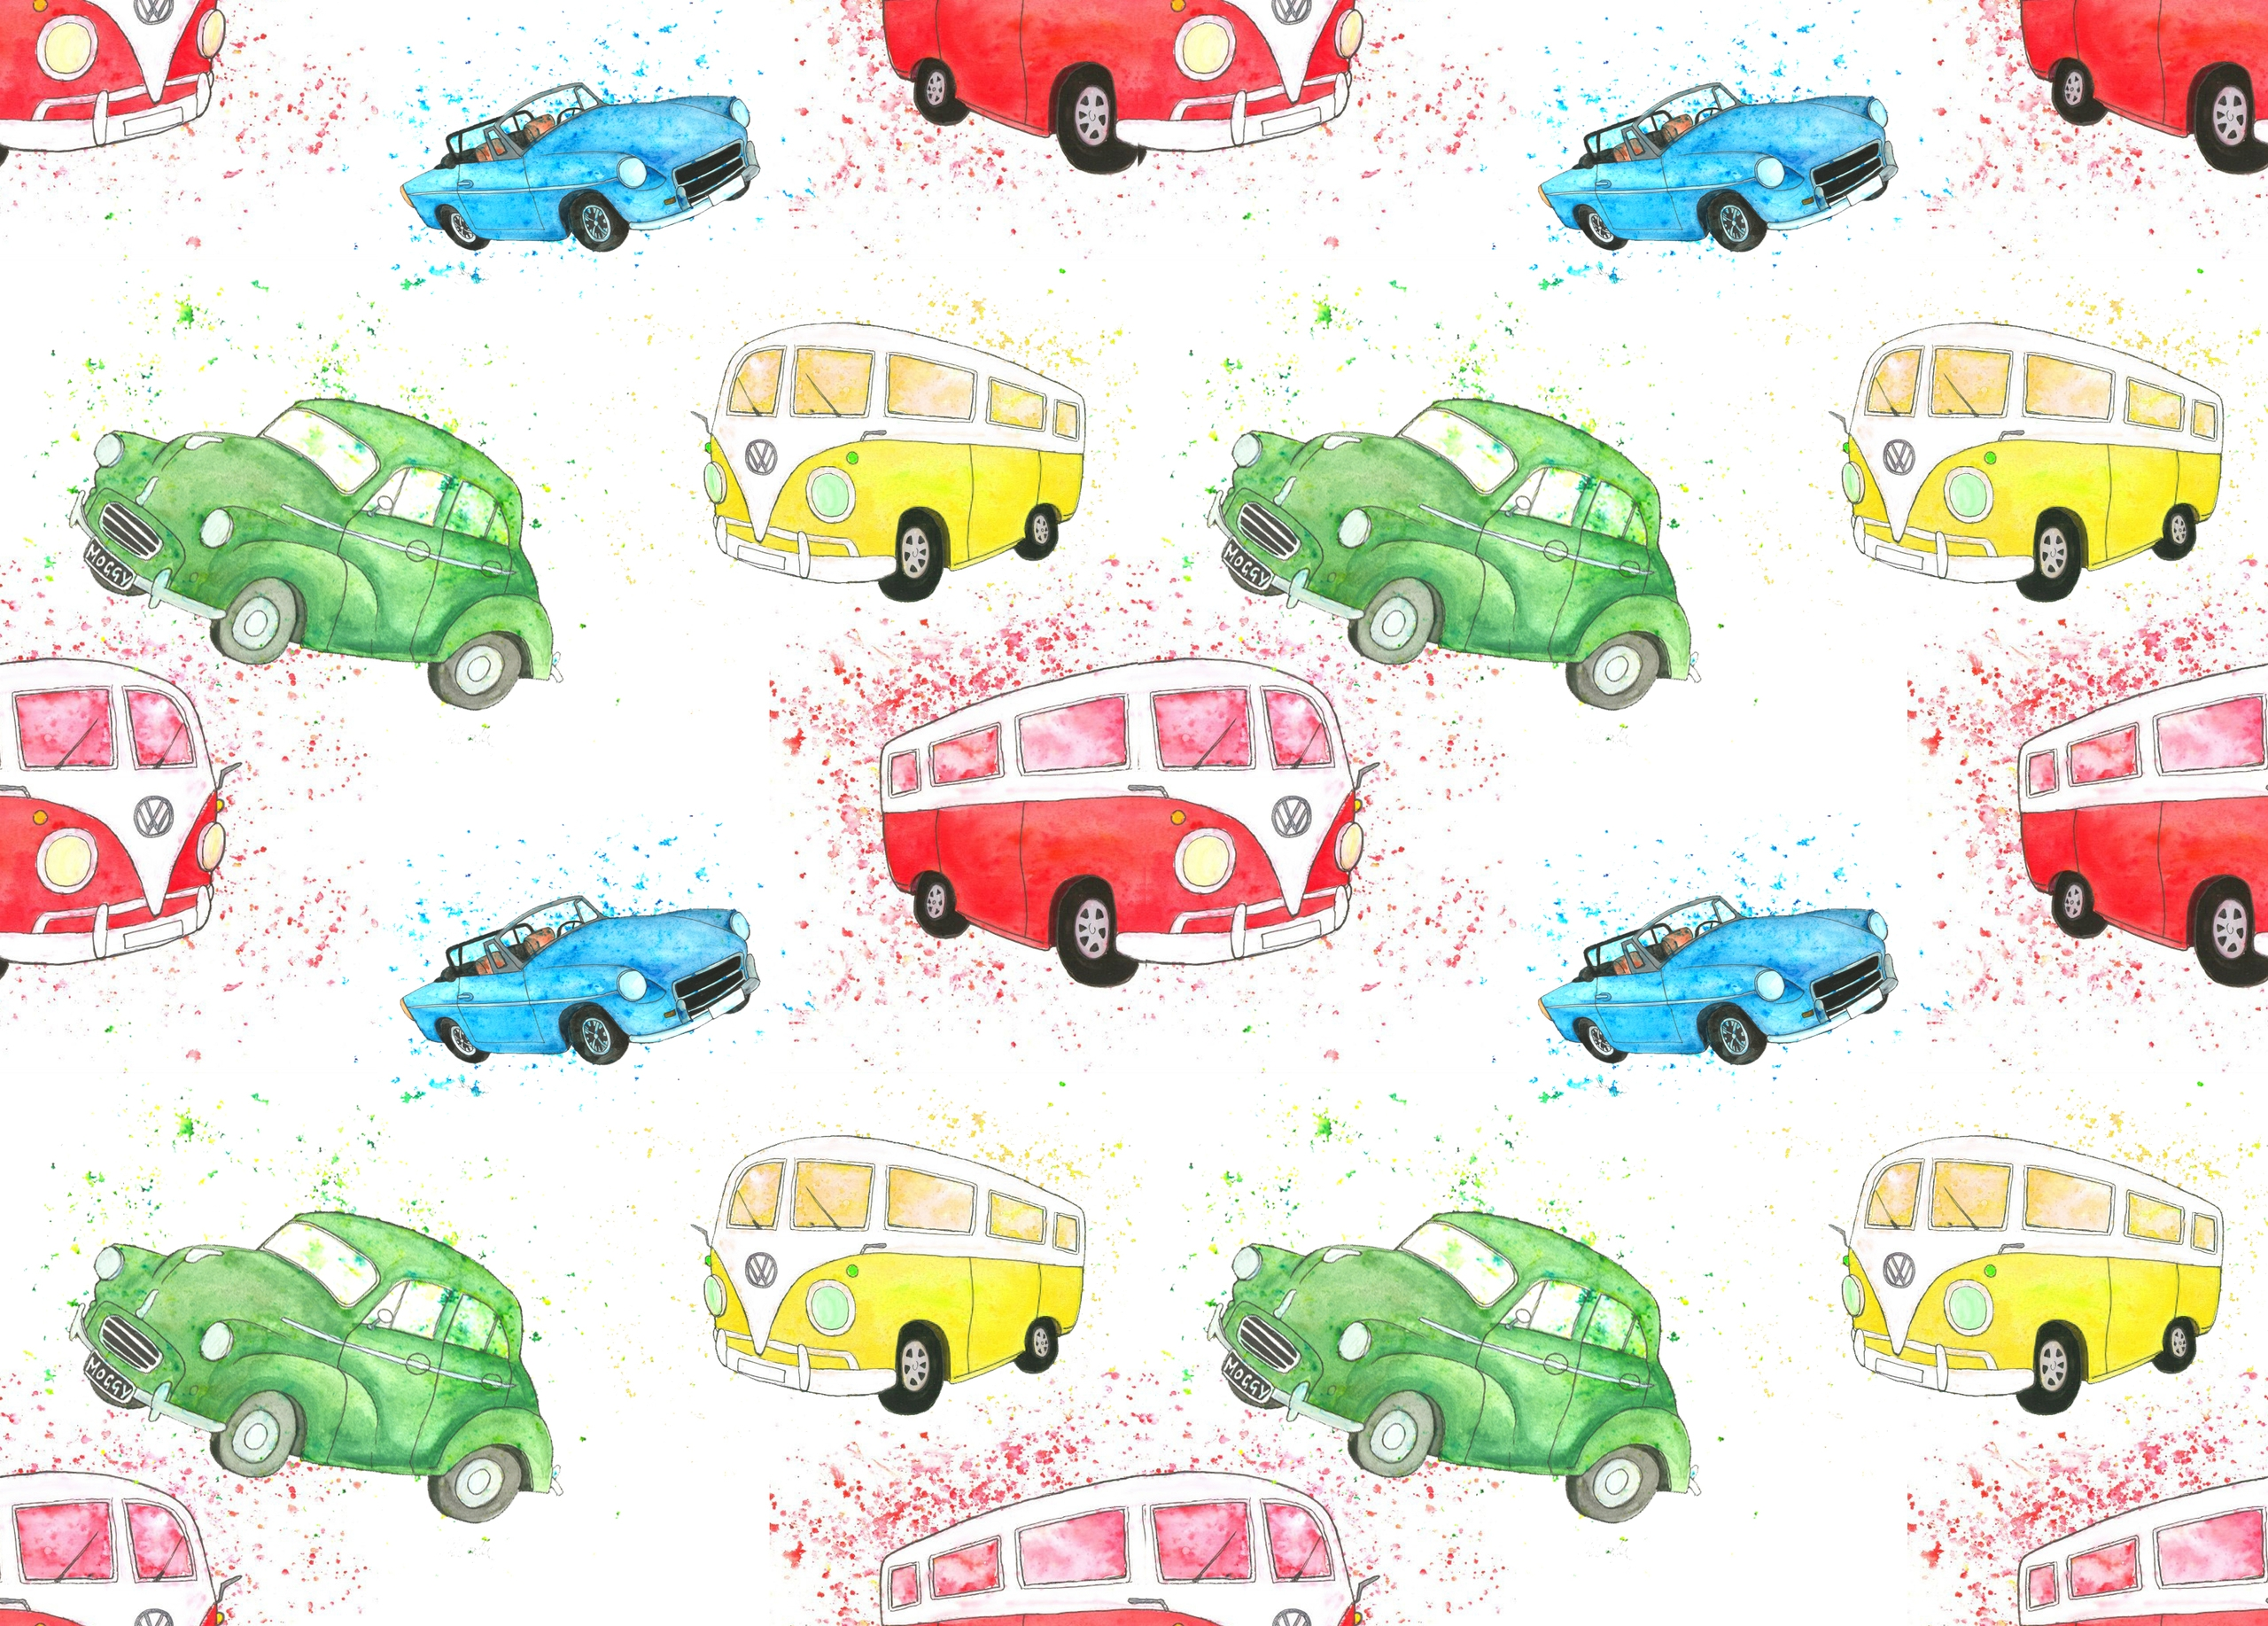 playing repeat pattern idea car - izzywoolley | ello